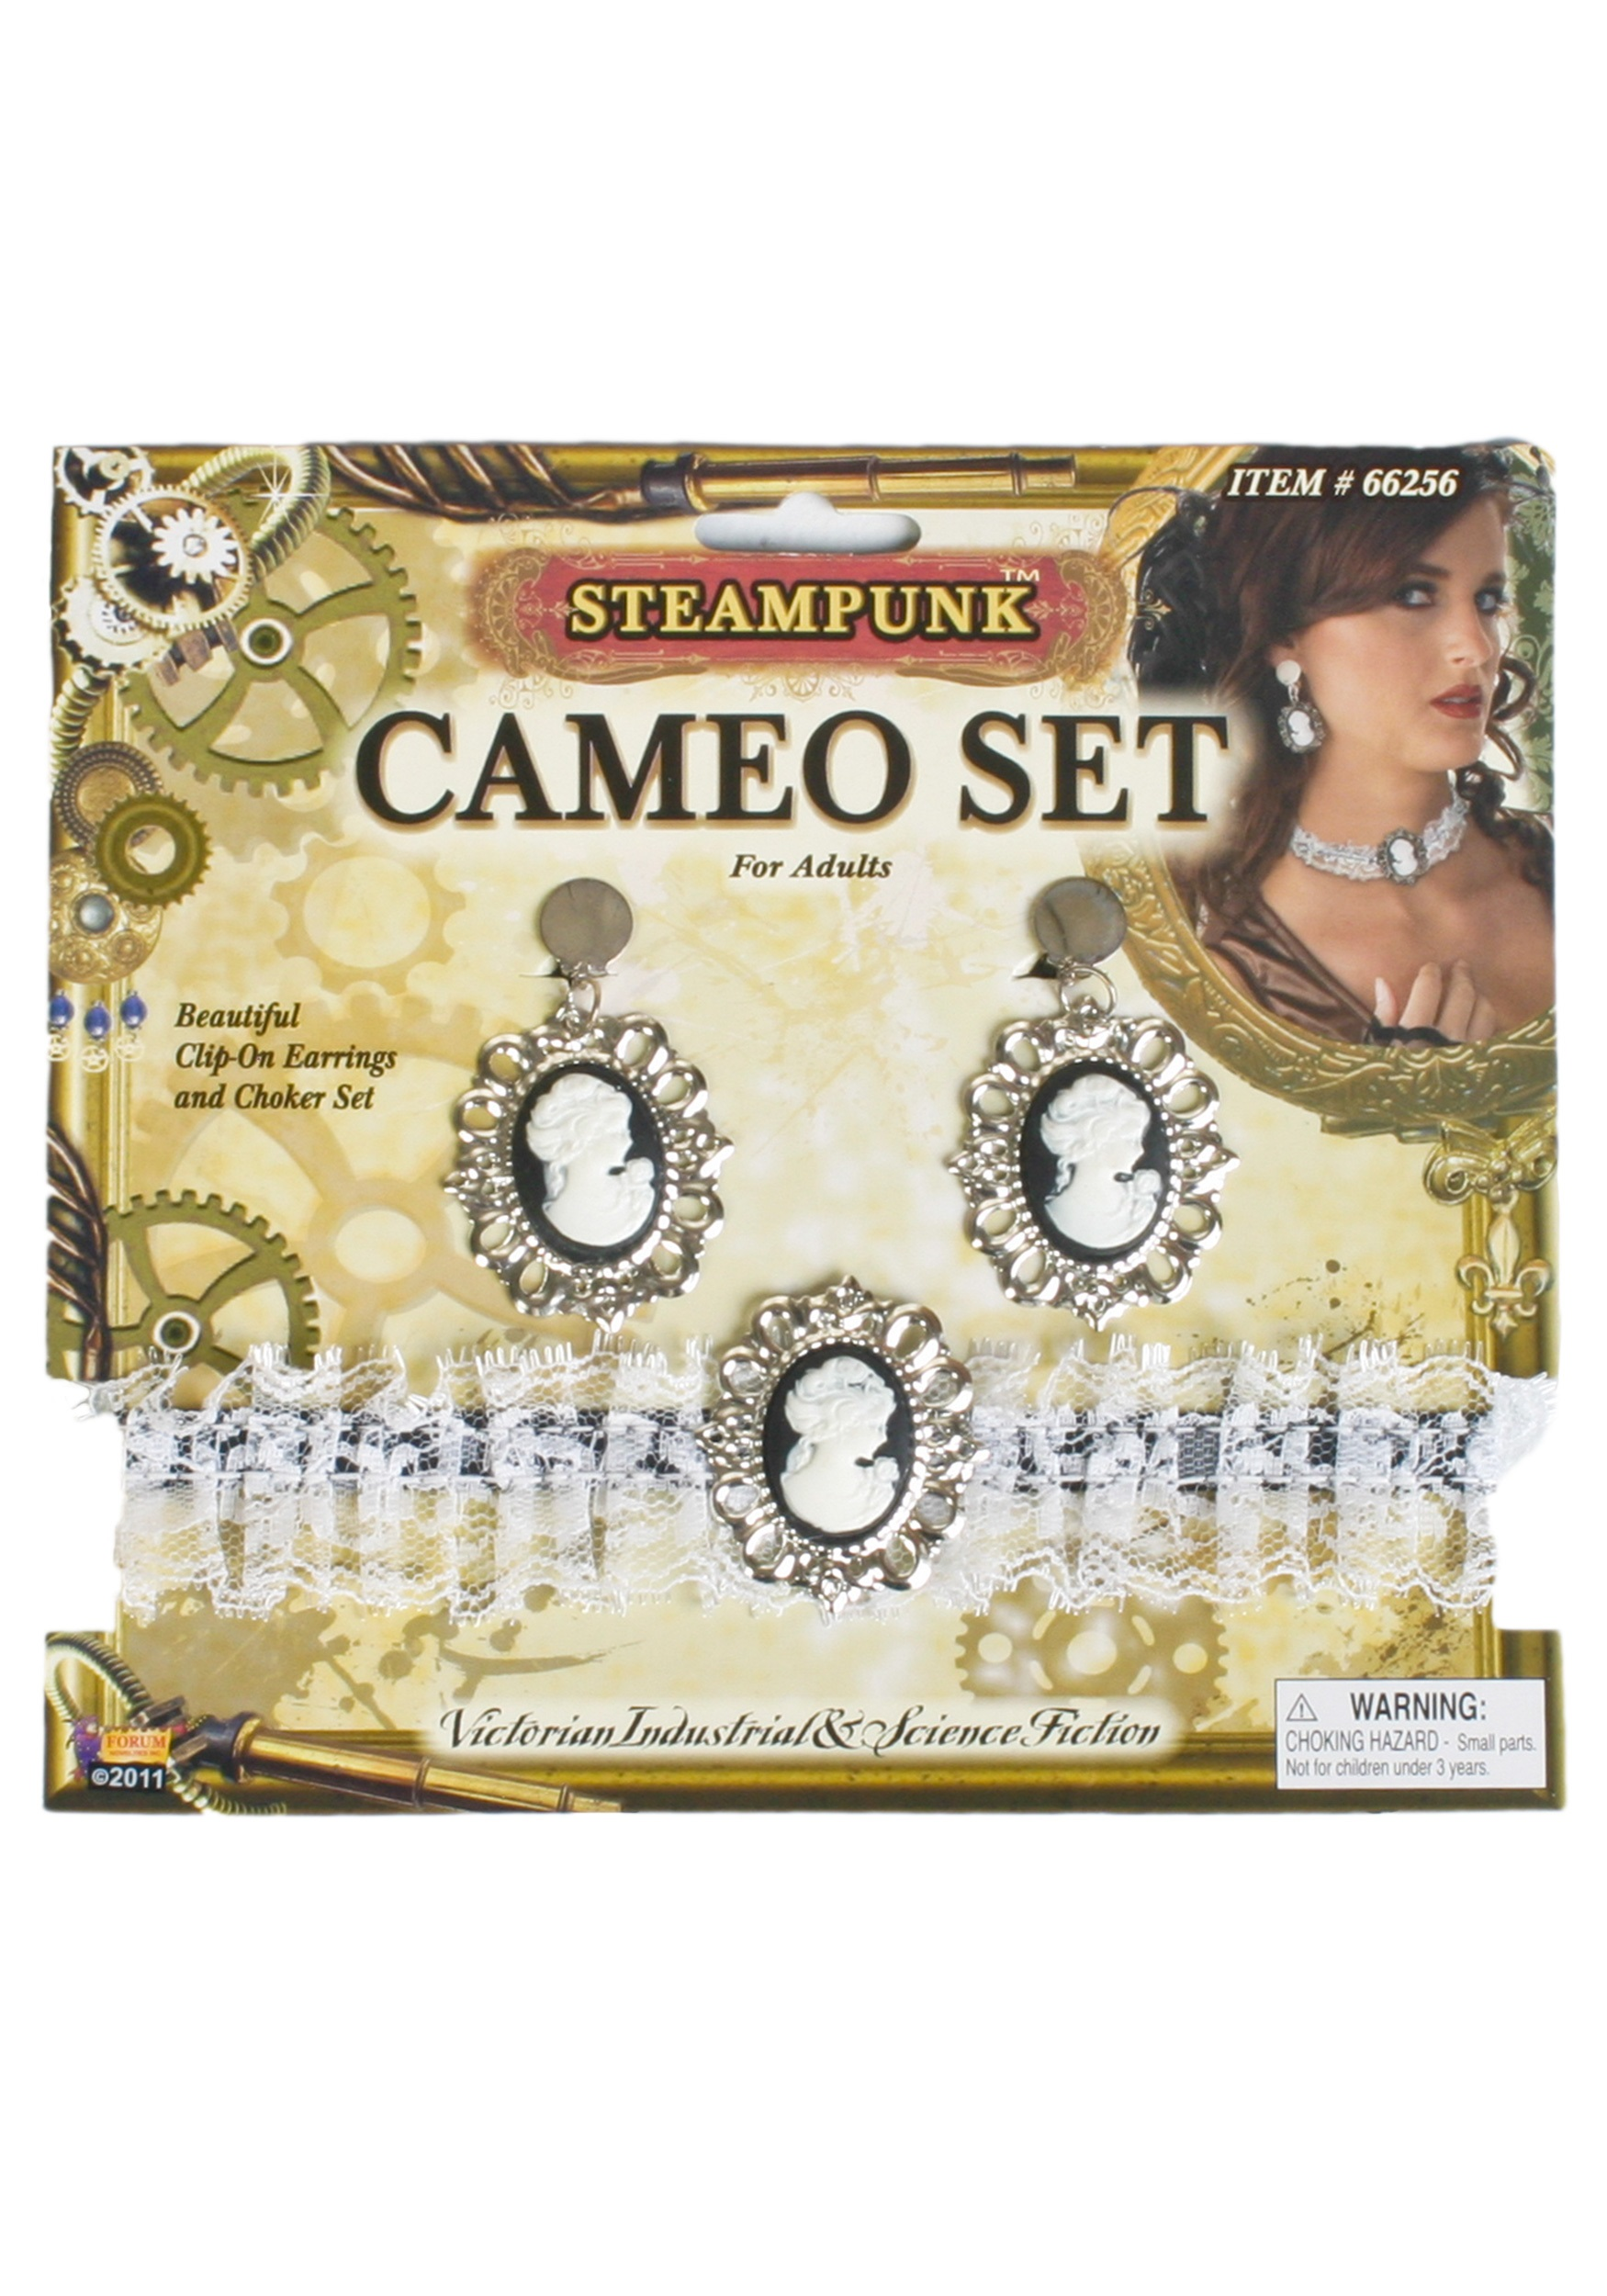 Steampunk Cameo Set